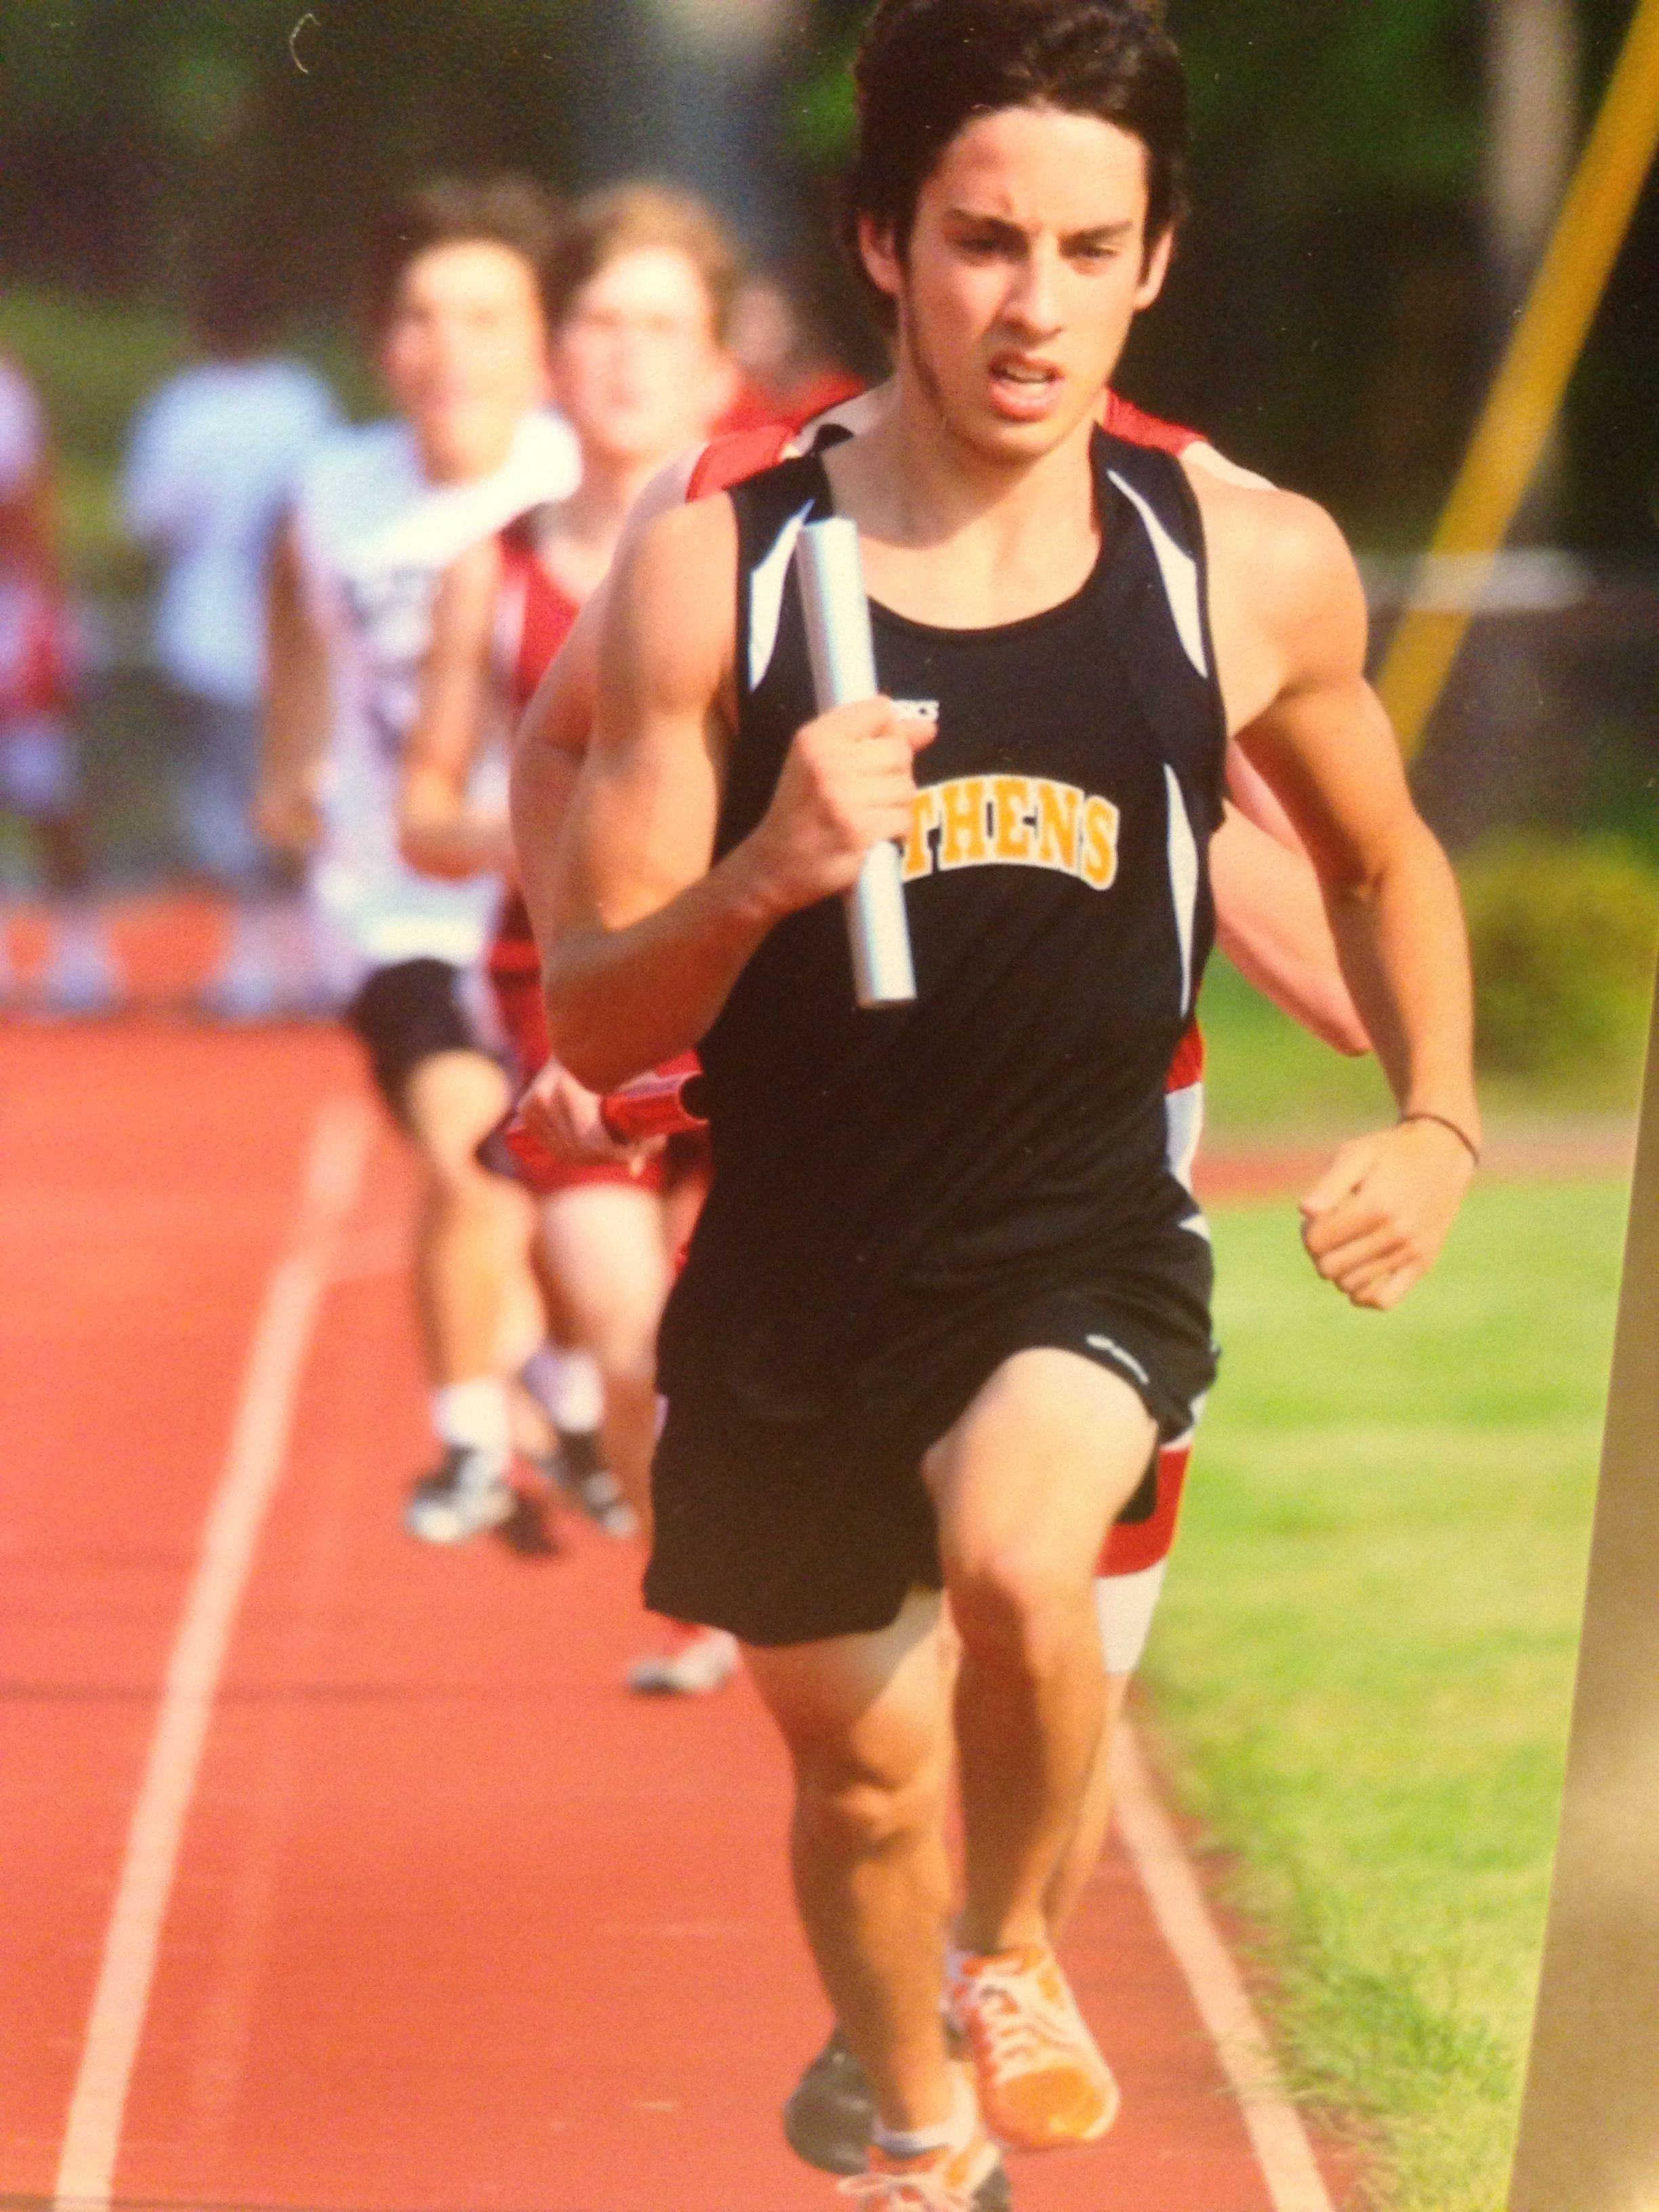 He earned place at State meet by his regular season track meet times. Athens High School 2012